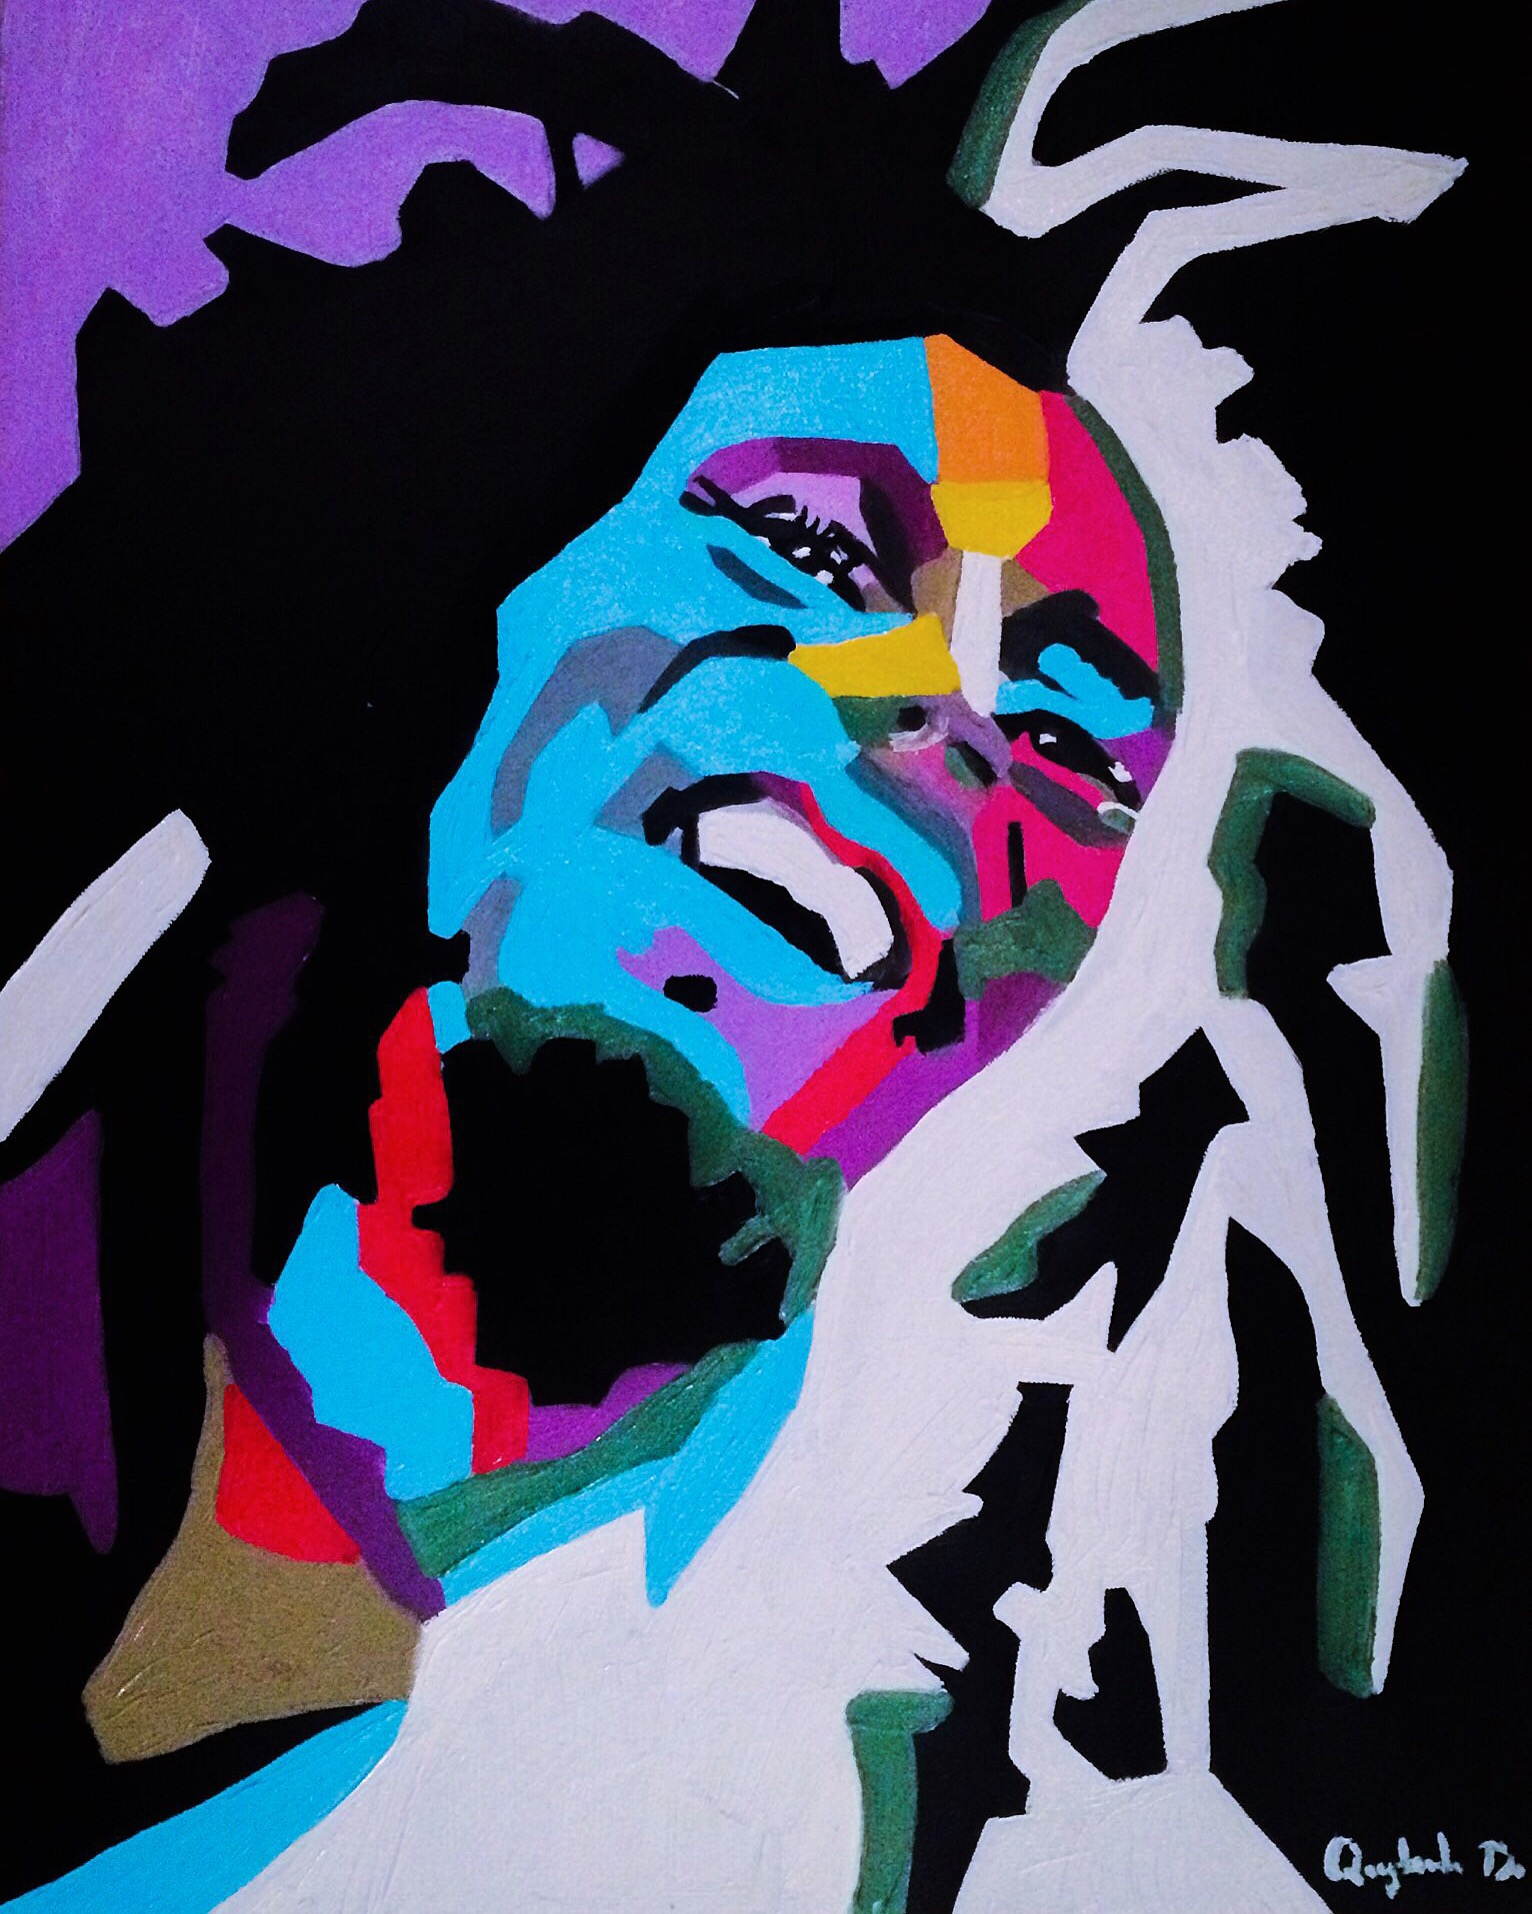 Bob Marley, Quyn Do, Oil on Canvas, 18x24, $7,500